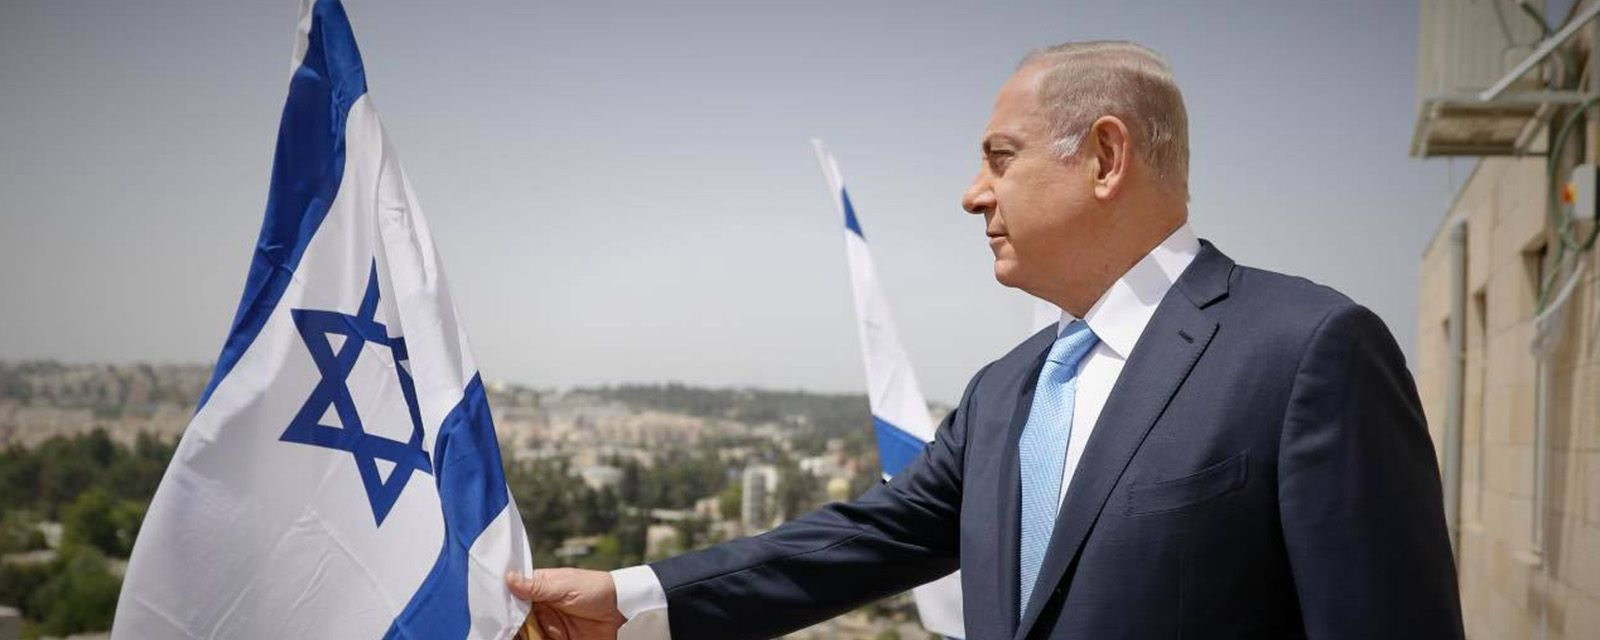 ISRAEL BECOMES FIRST STATE TO BACK AN INDEPENDENT KURDISTAN